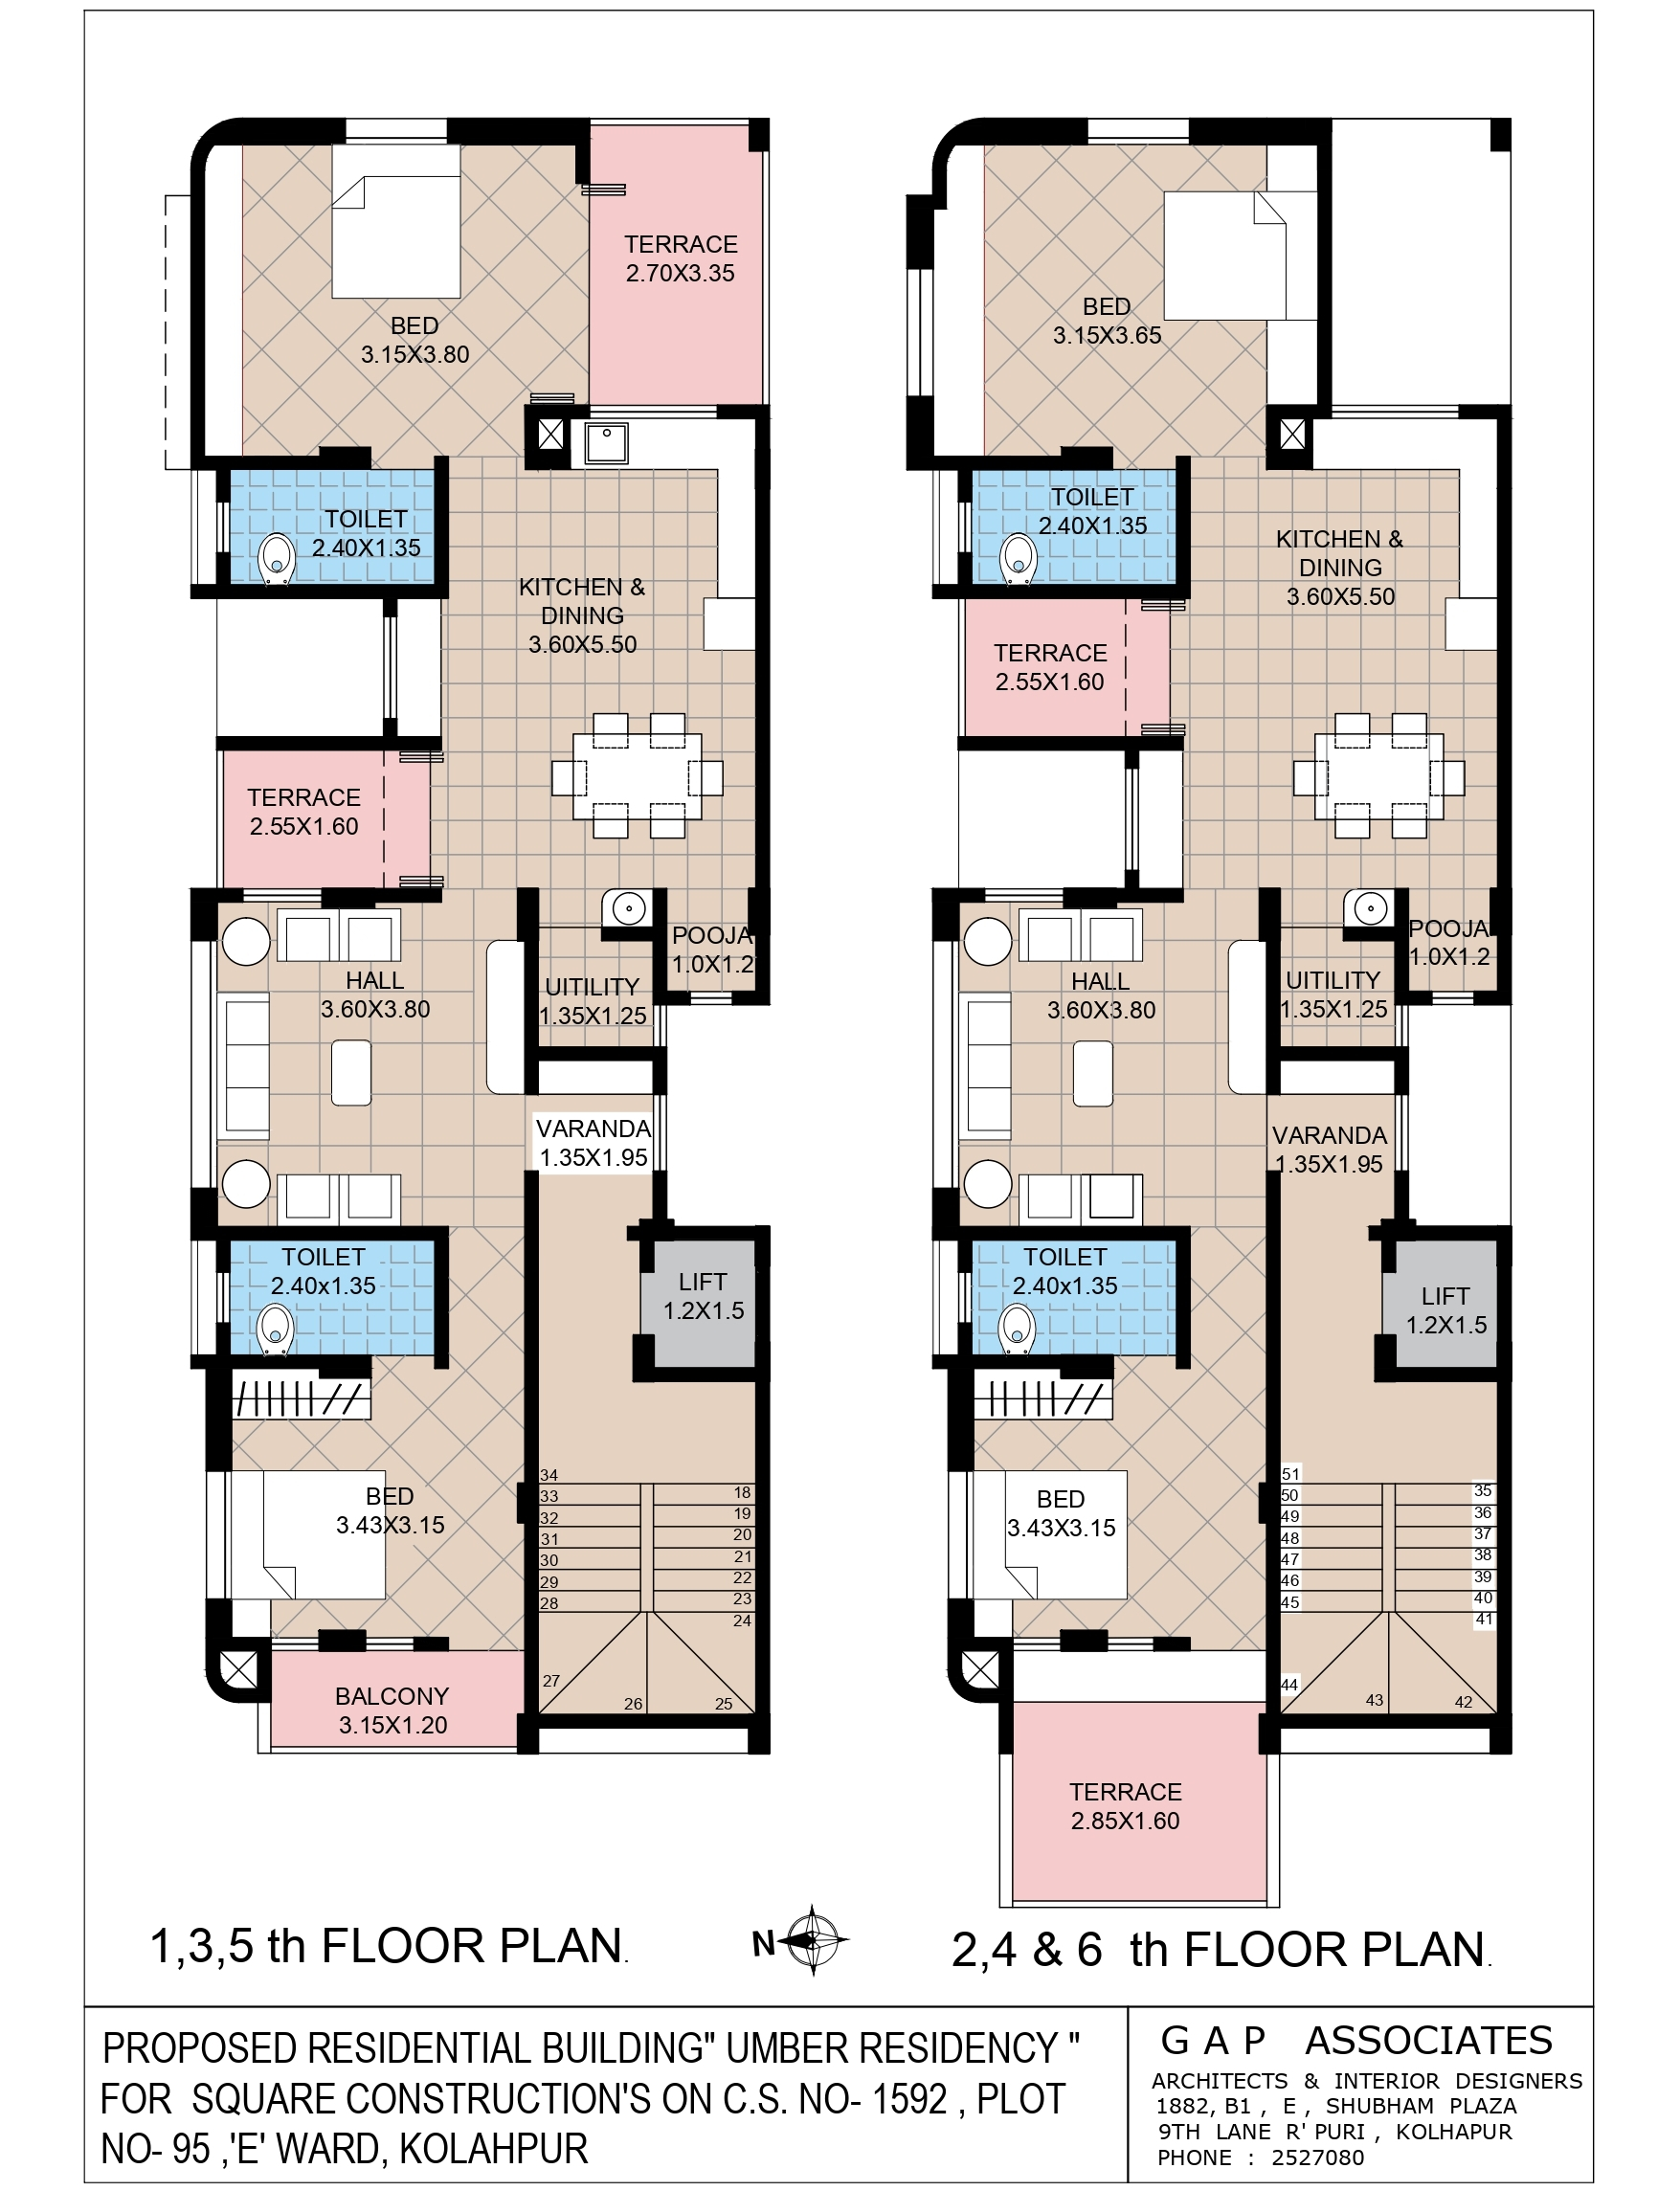 1st to 6th Floor Plan